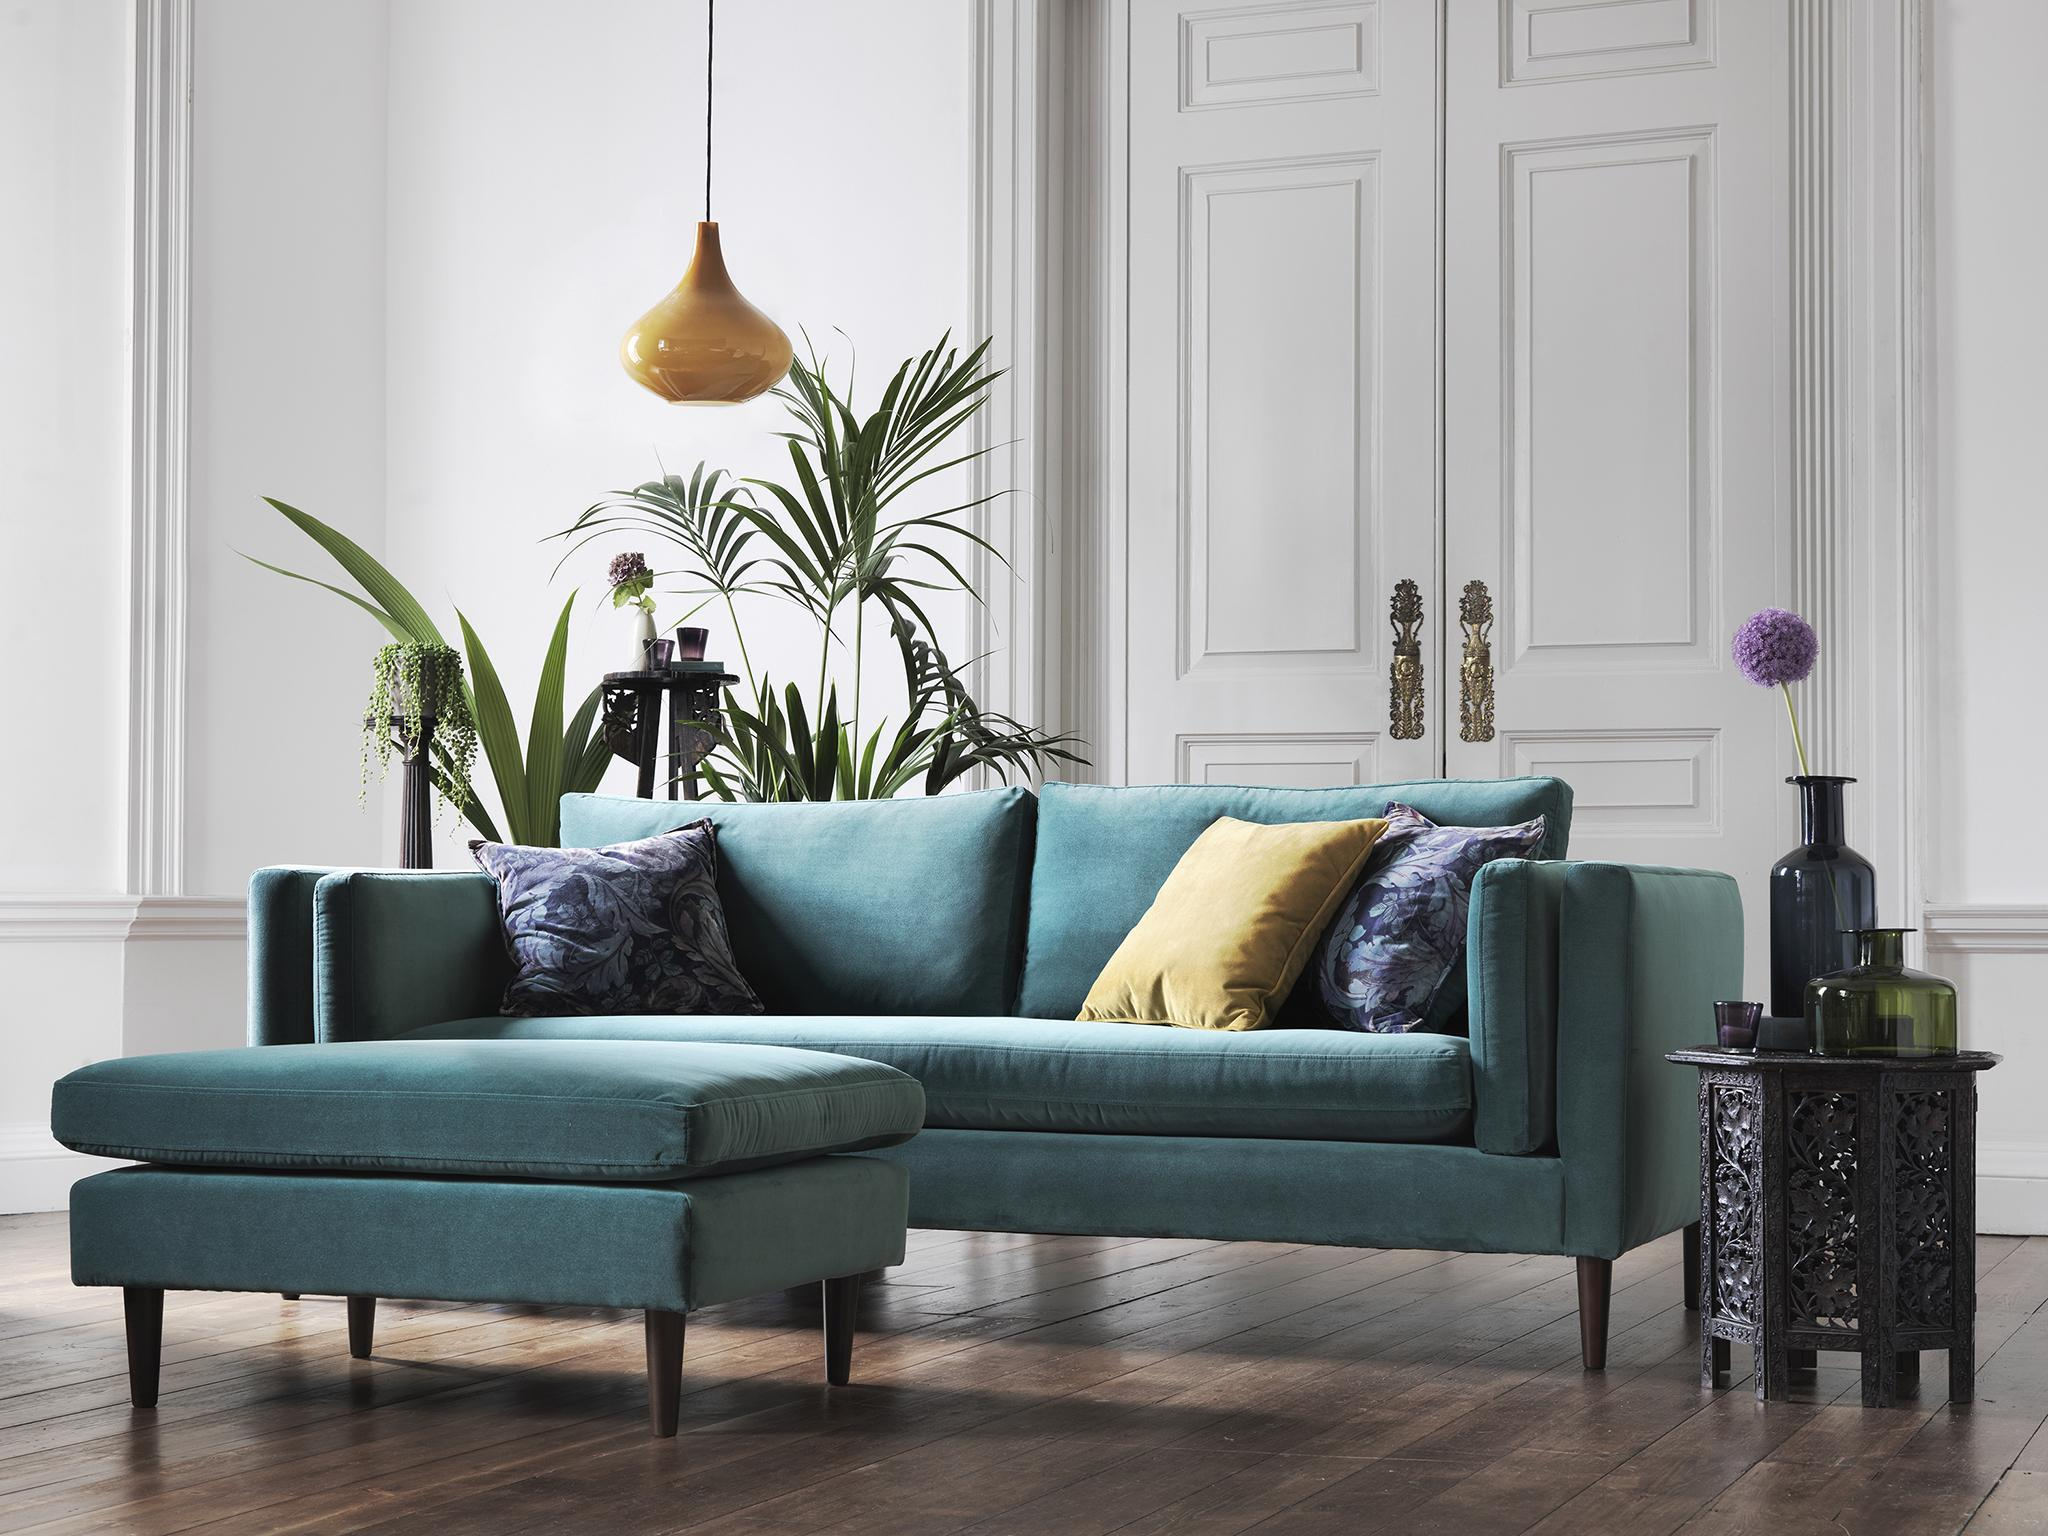 How to decorate your home according to London Design Week